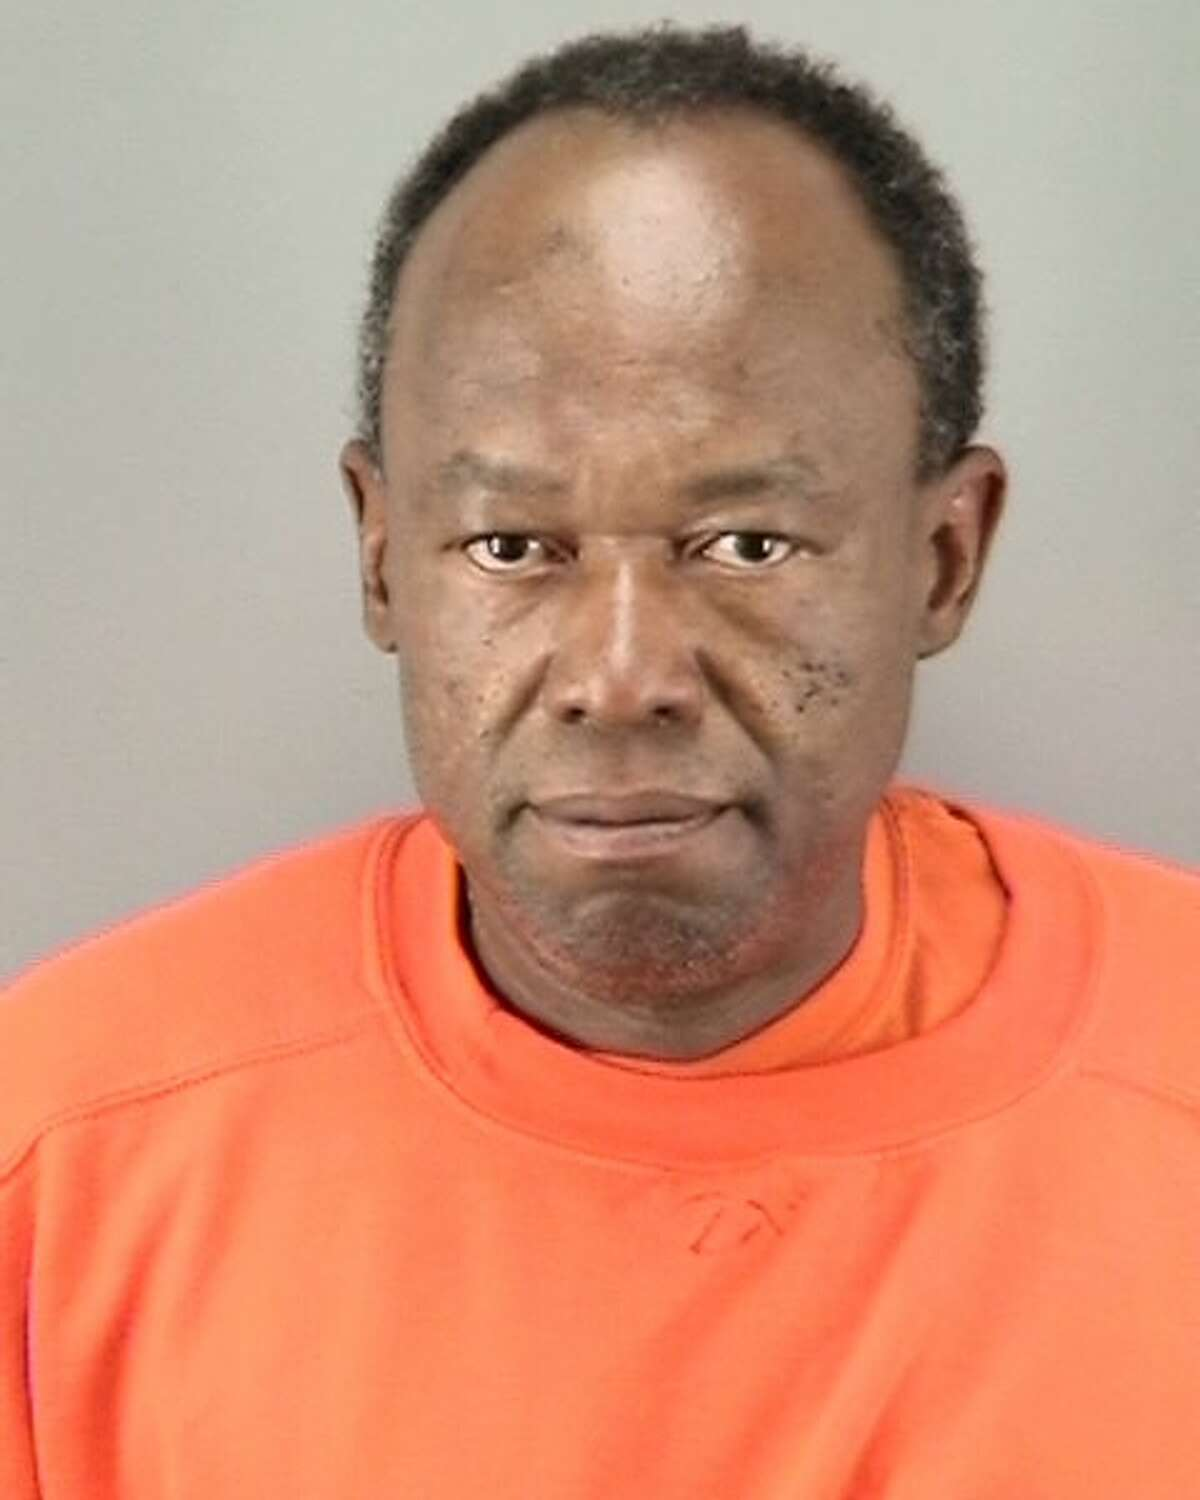 Emmaunel Morancy, 50, was booked into County Jail Sunday in connection with a hate-crime attack during San Francisco Pride weekend.